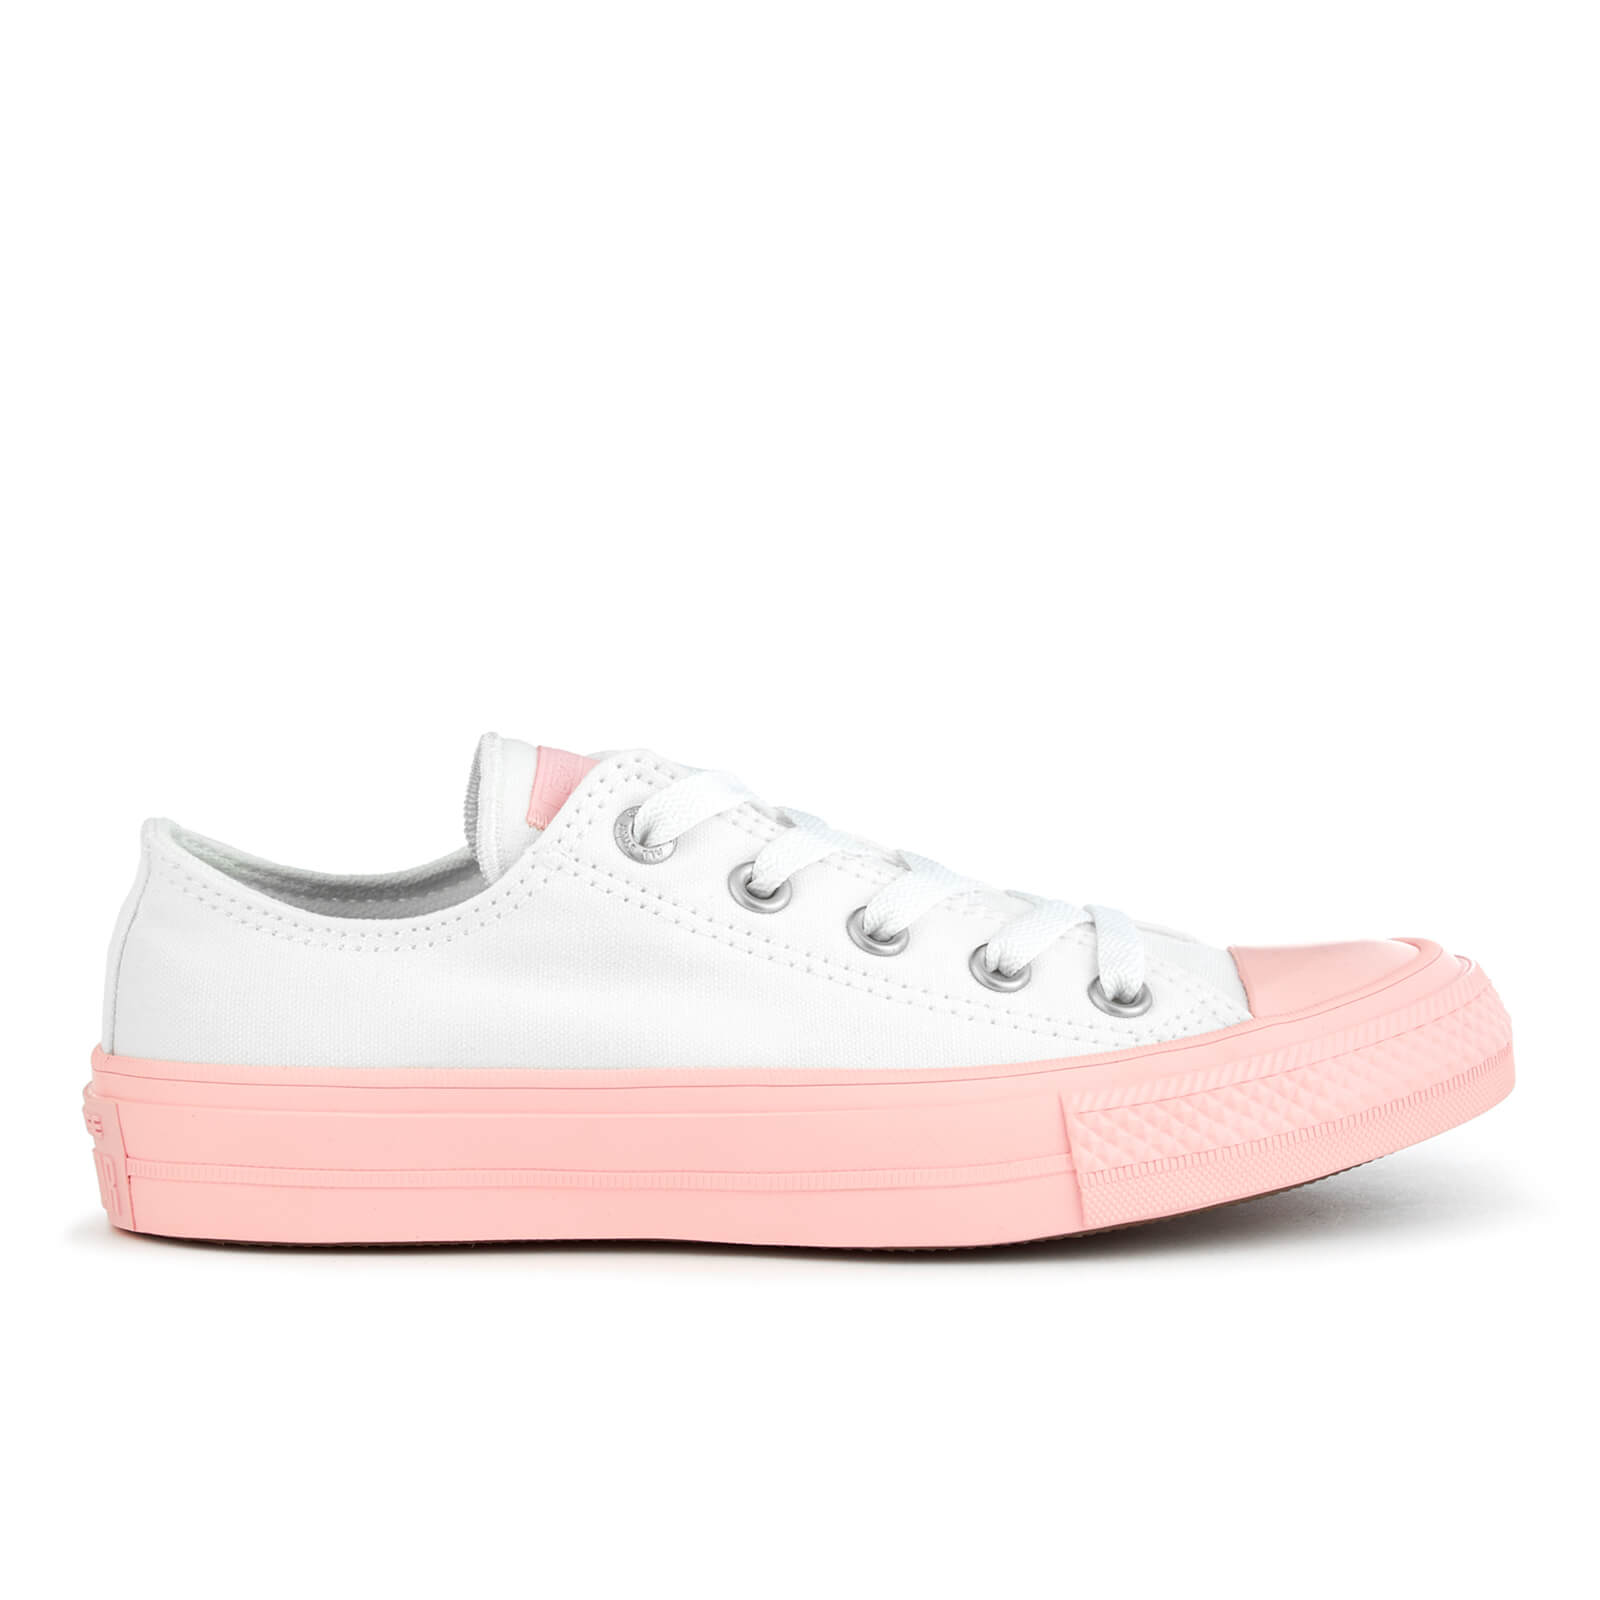 7908e900e614 ... Converse Women s Chuck Taylor All Star II Ox Trainers - White Vapor Pink